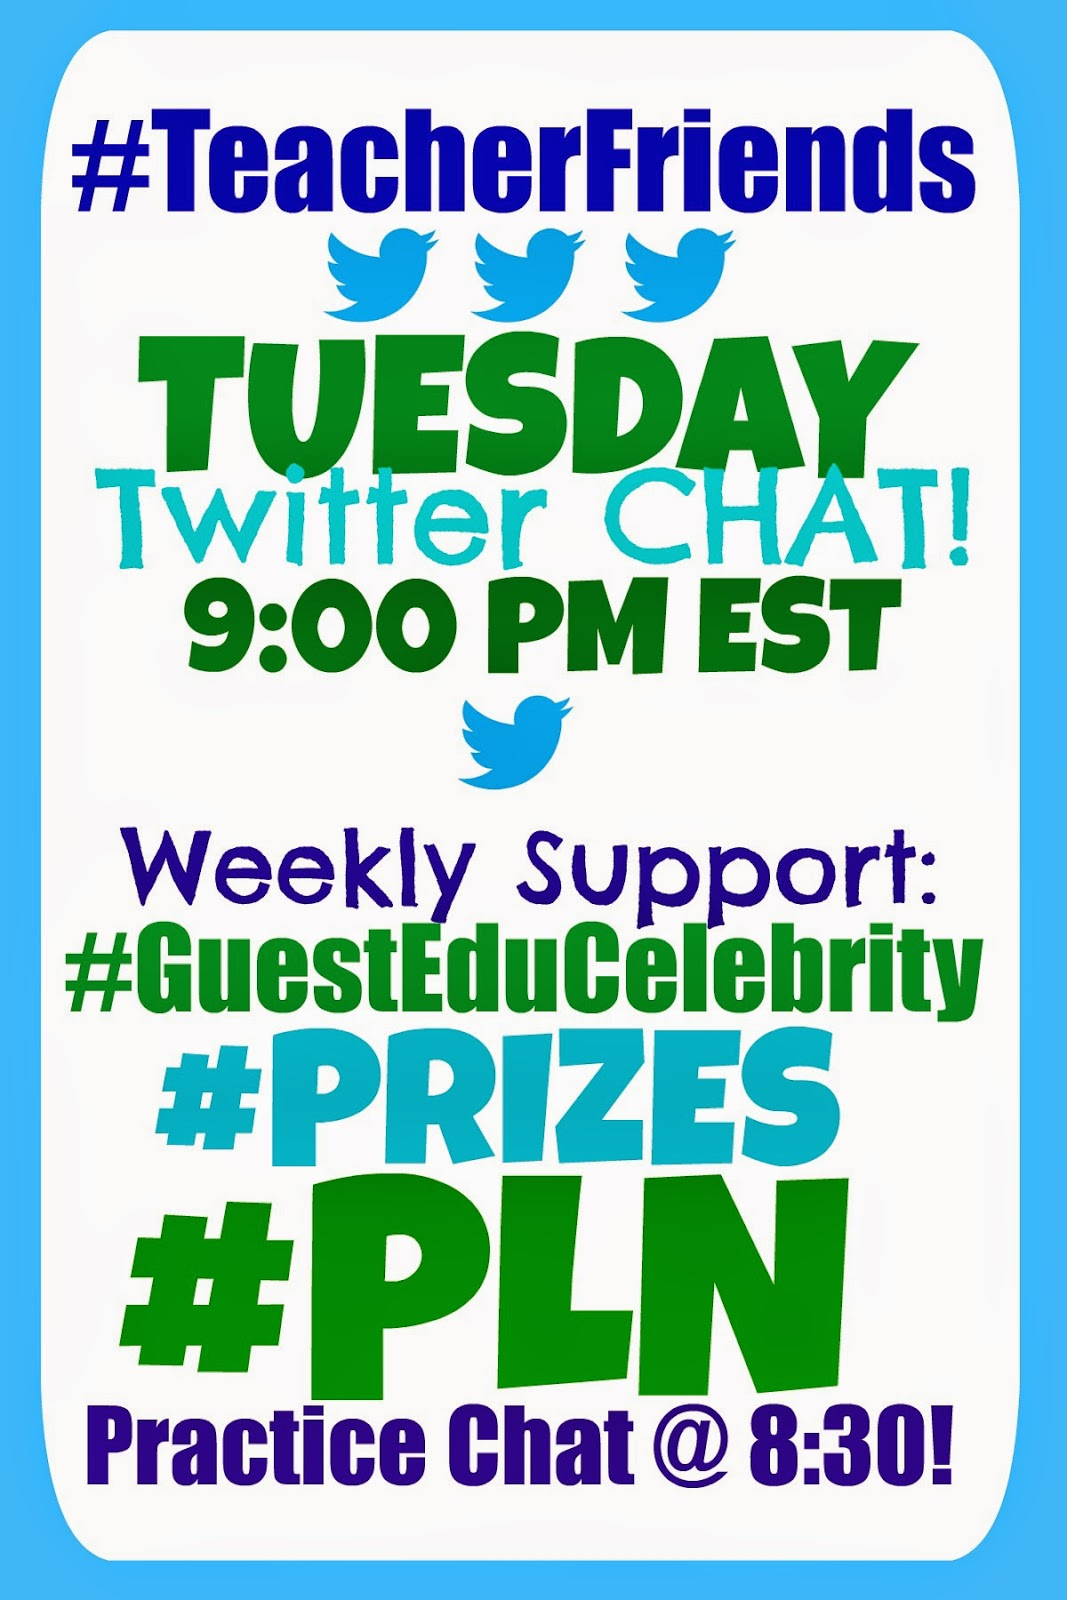 Tuesday Twitter Chat 9PM EST Weekly GuestEduCelebrity, Prizes + PLN